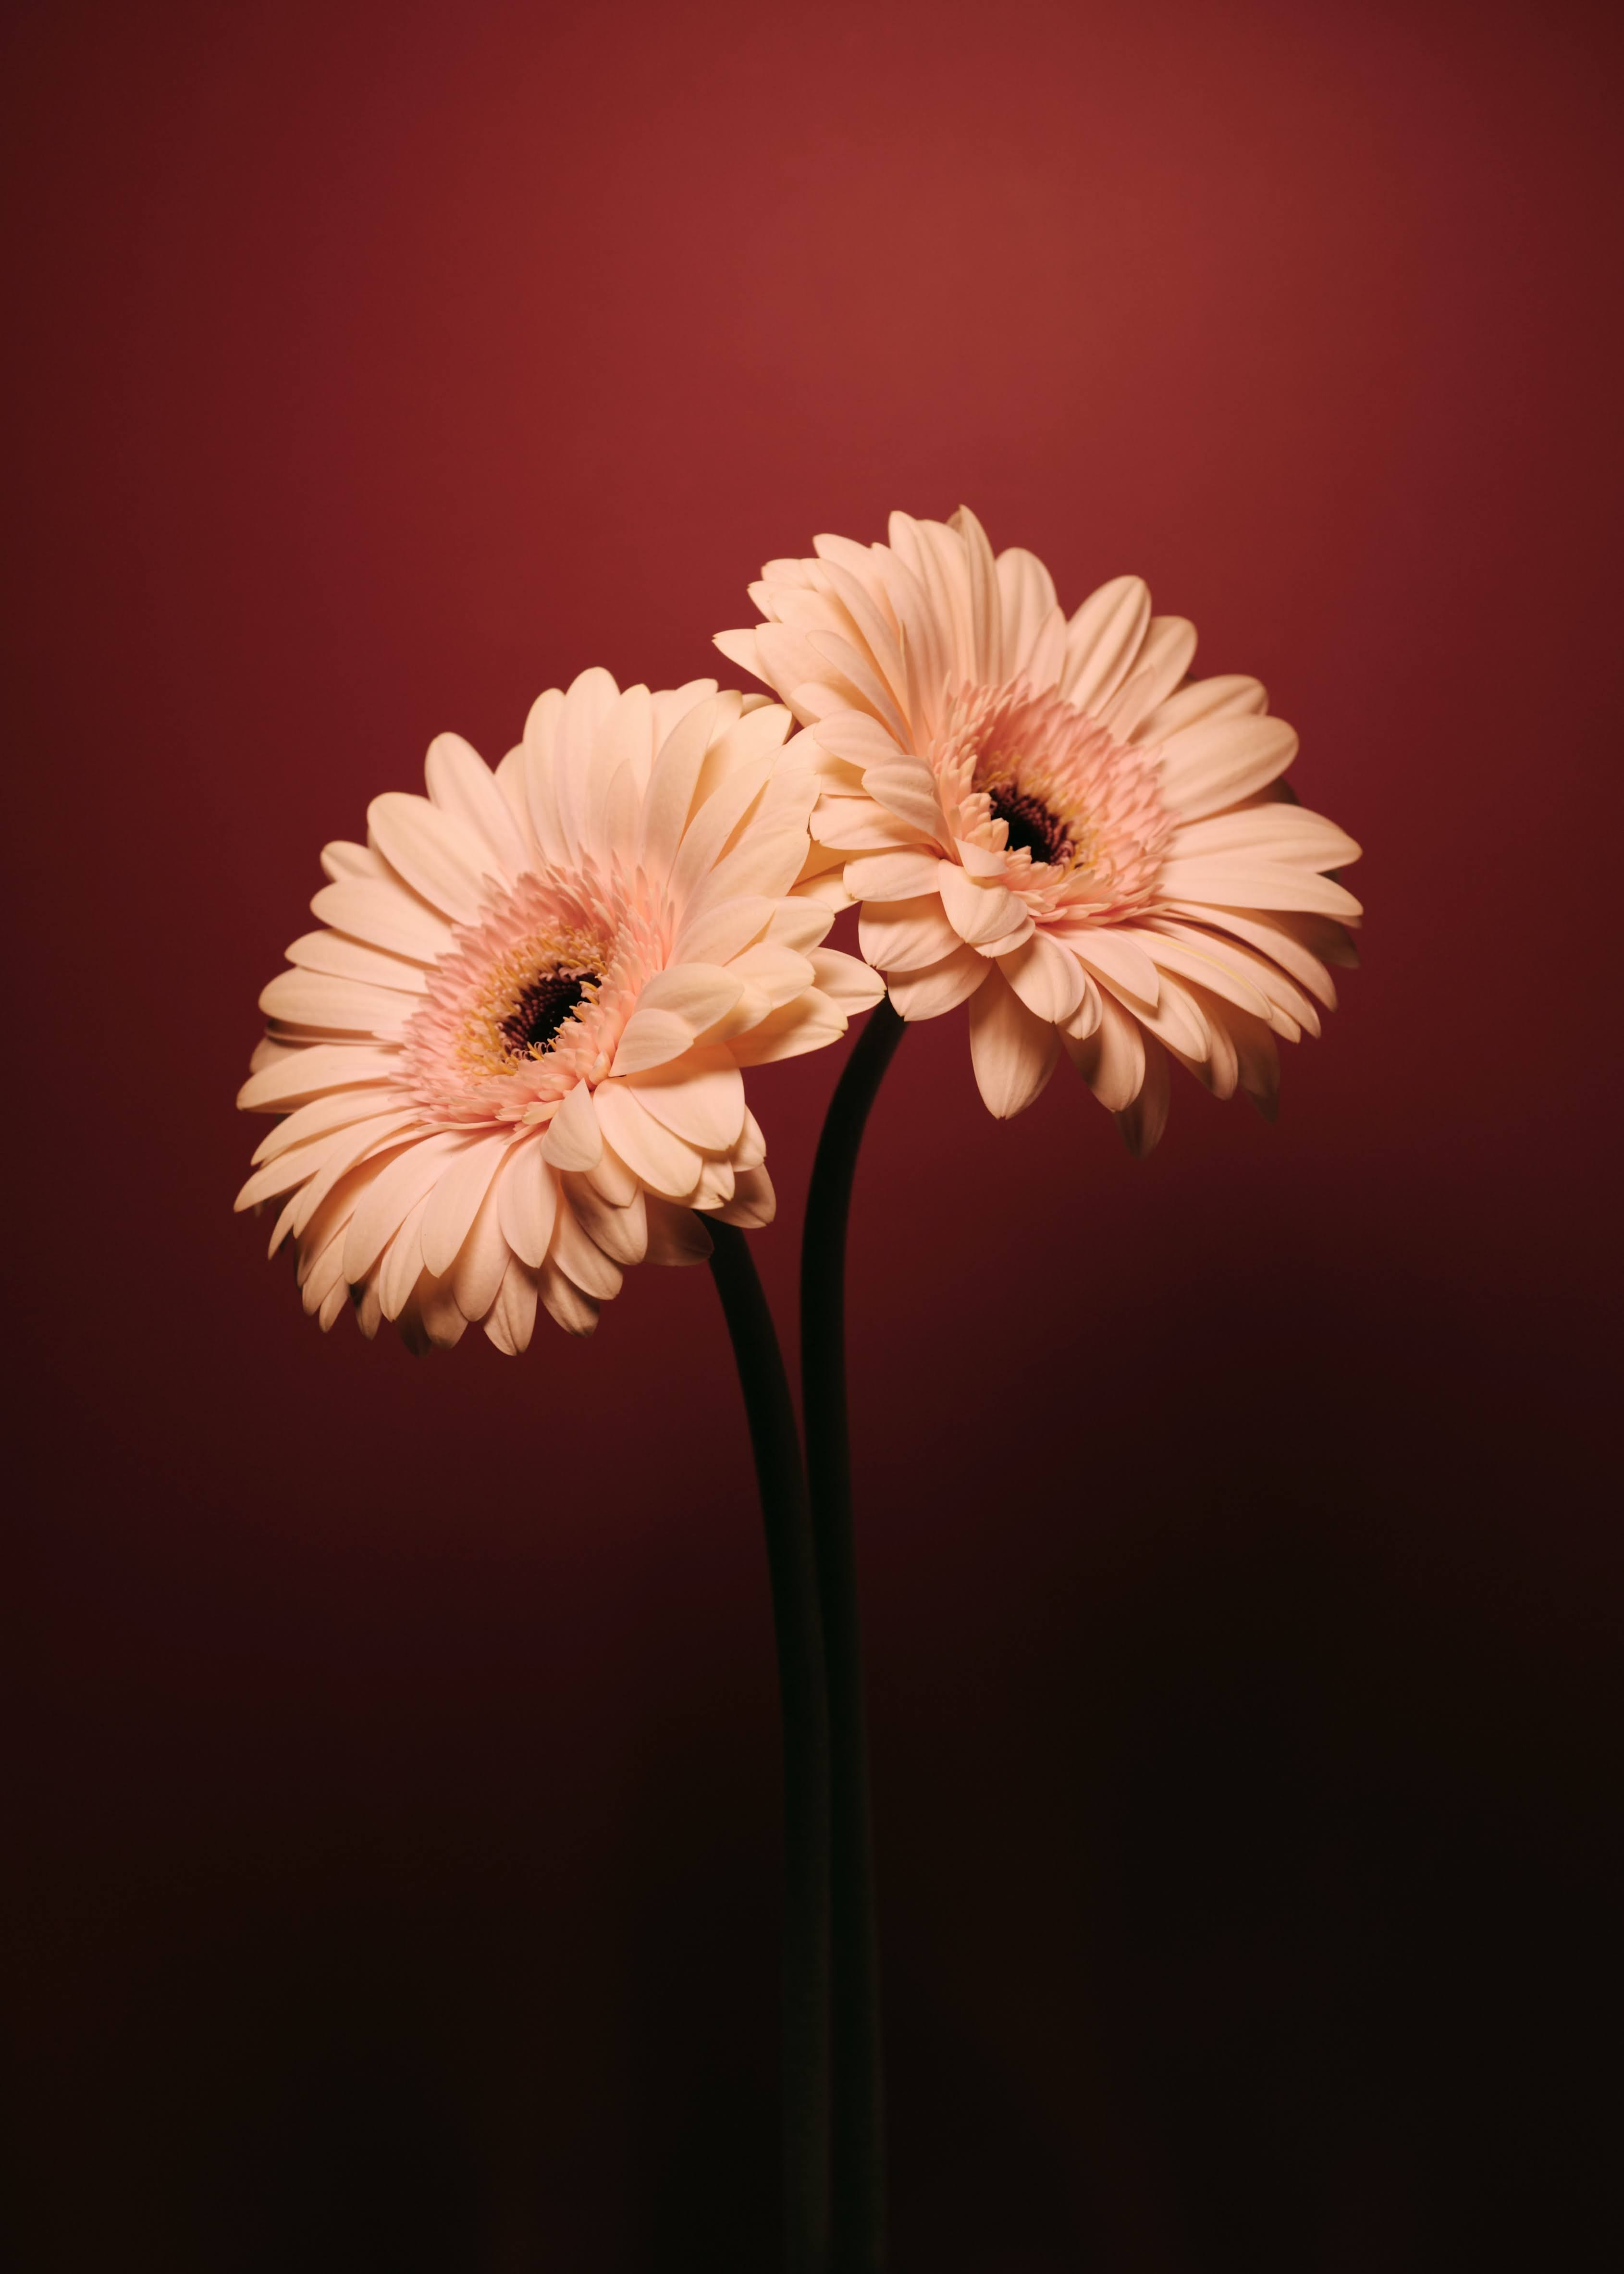 Pale Pink Gerbera Daisies in Close-Up | Photo by Vika Aleksandrova via Unsplash